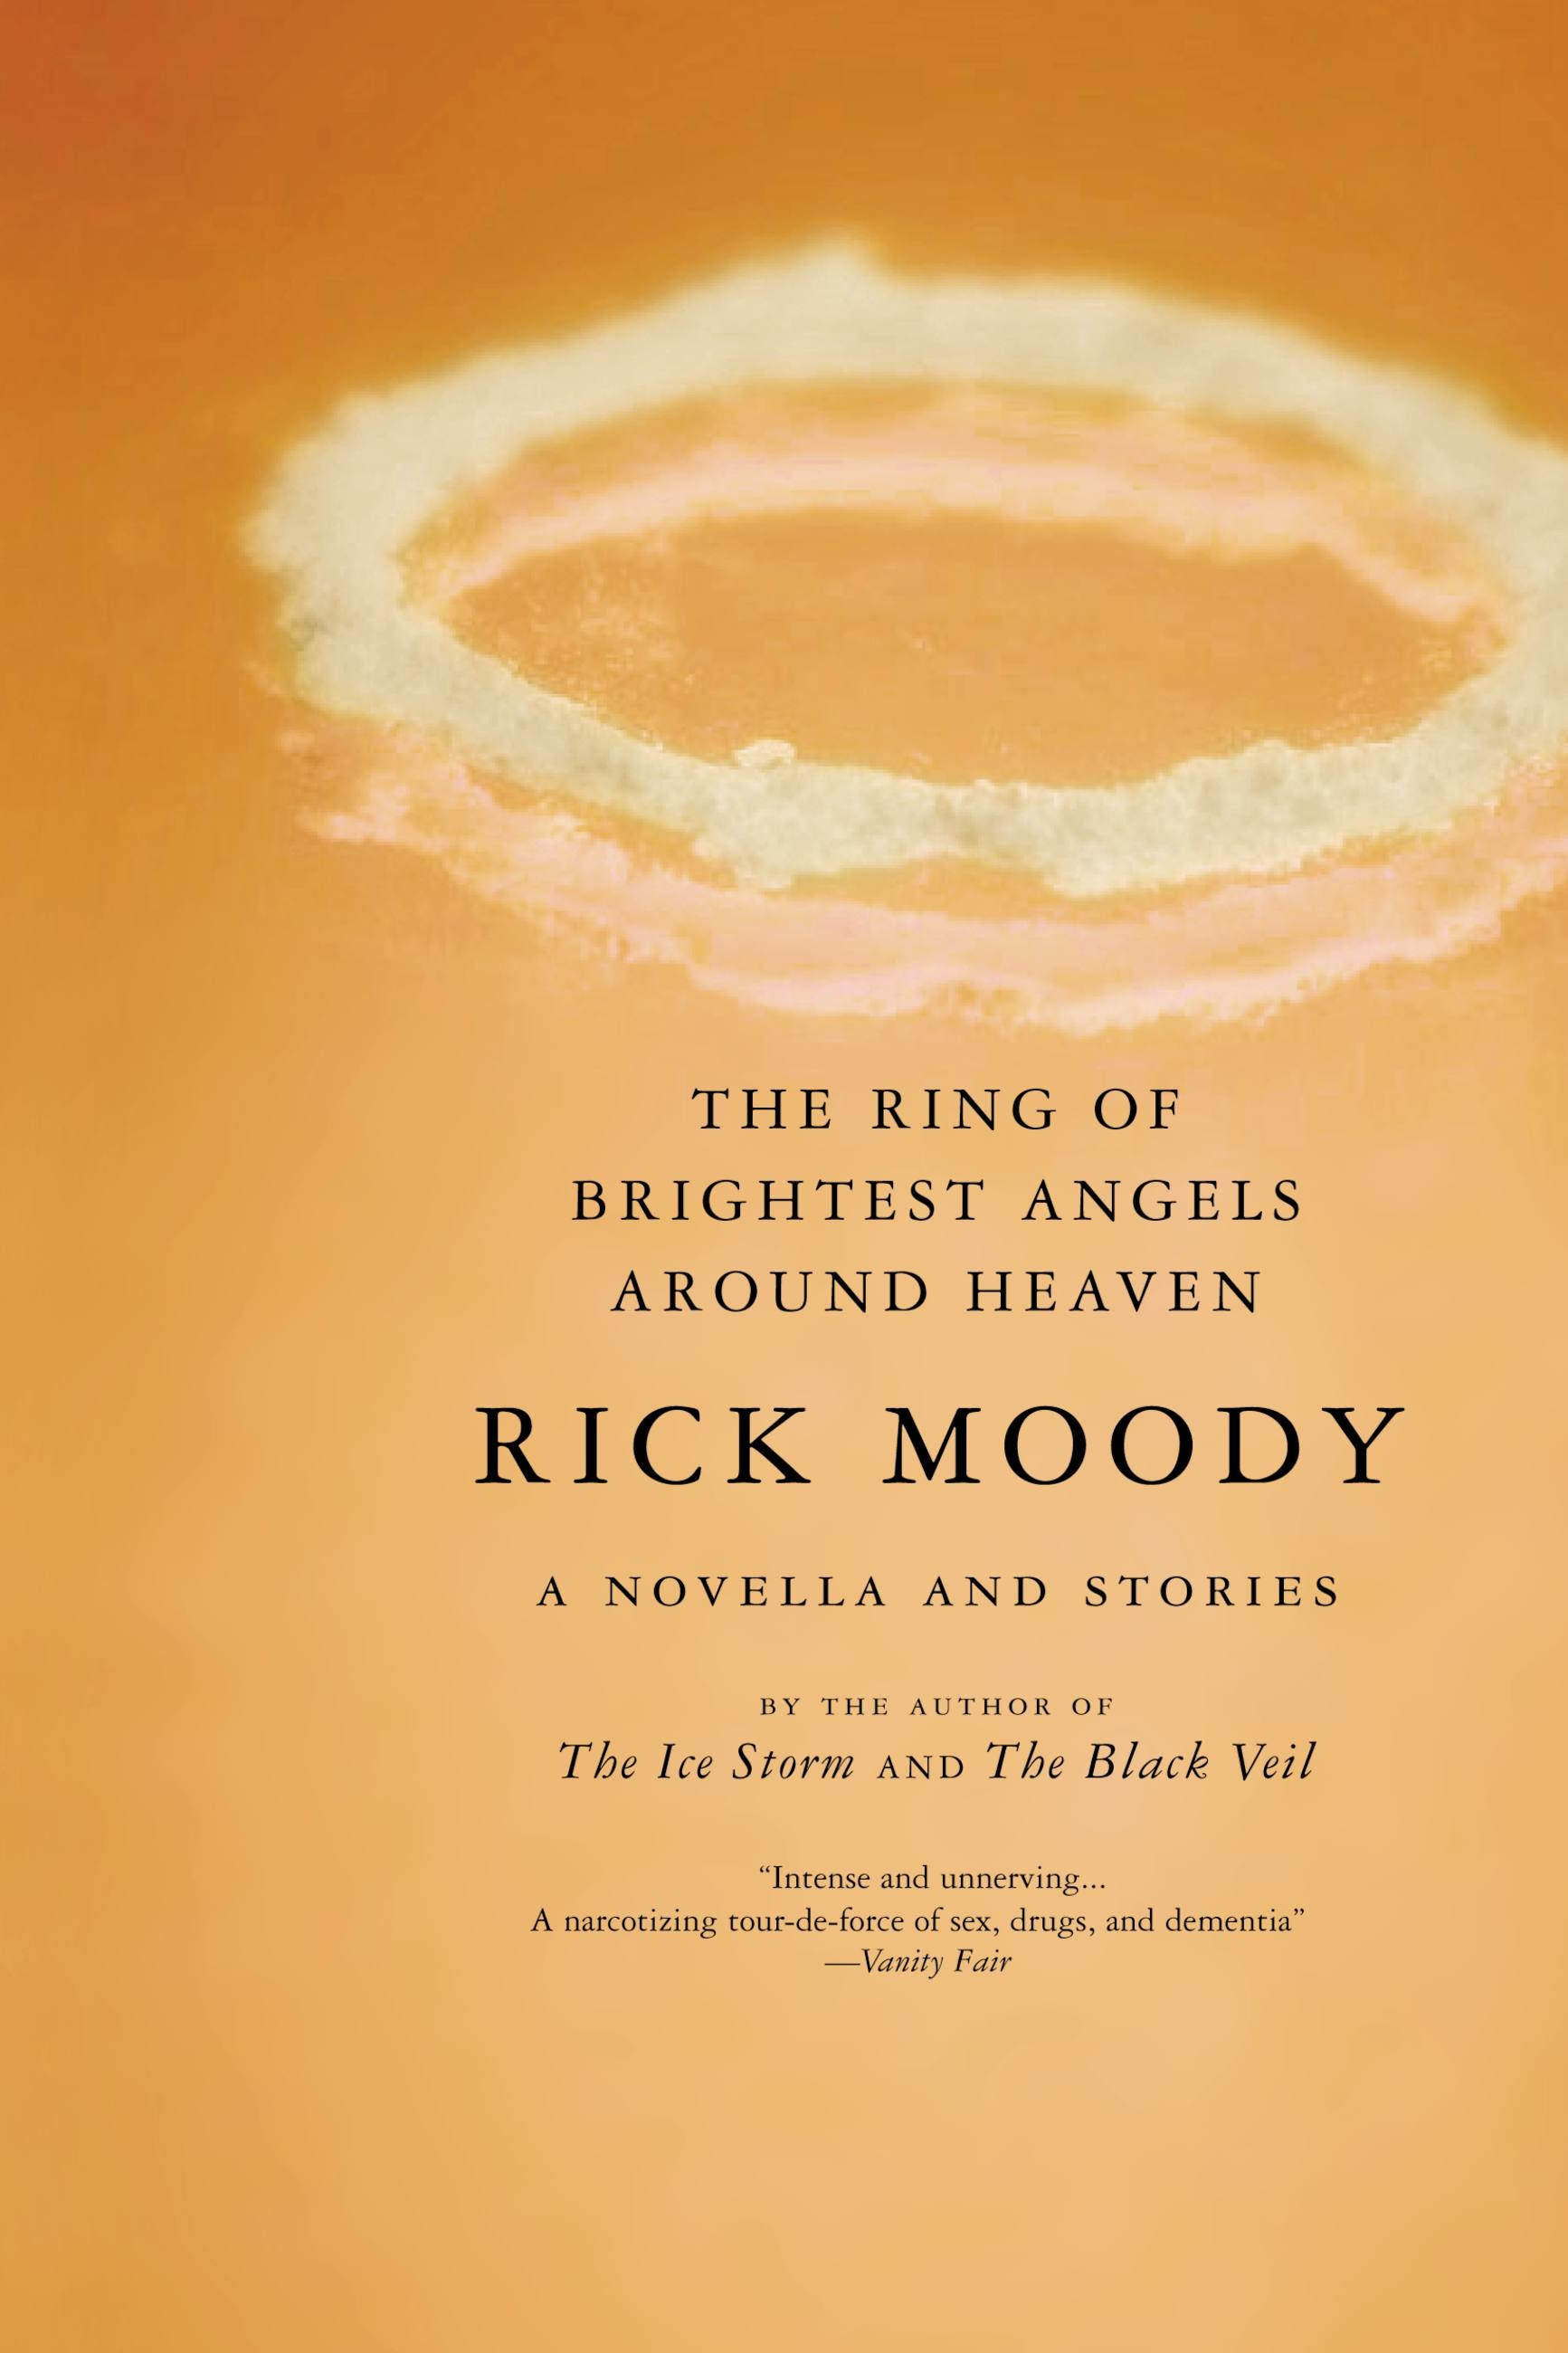 """the story boys by ricky moody Boys"""" by rick moody, """"girl"""" by jamaica kinkaid, """"lust"""" by susan minot """"boys"""" by rick moody, """"girl"""" by jamaica kinkaid, """"lust"""" by susan minot compare and contrast the style and tone in these three stories."""